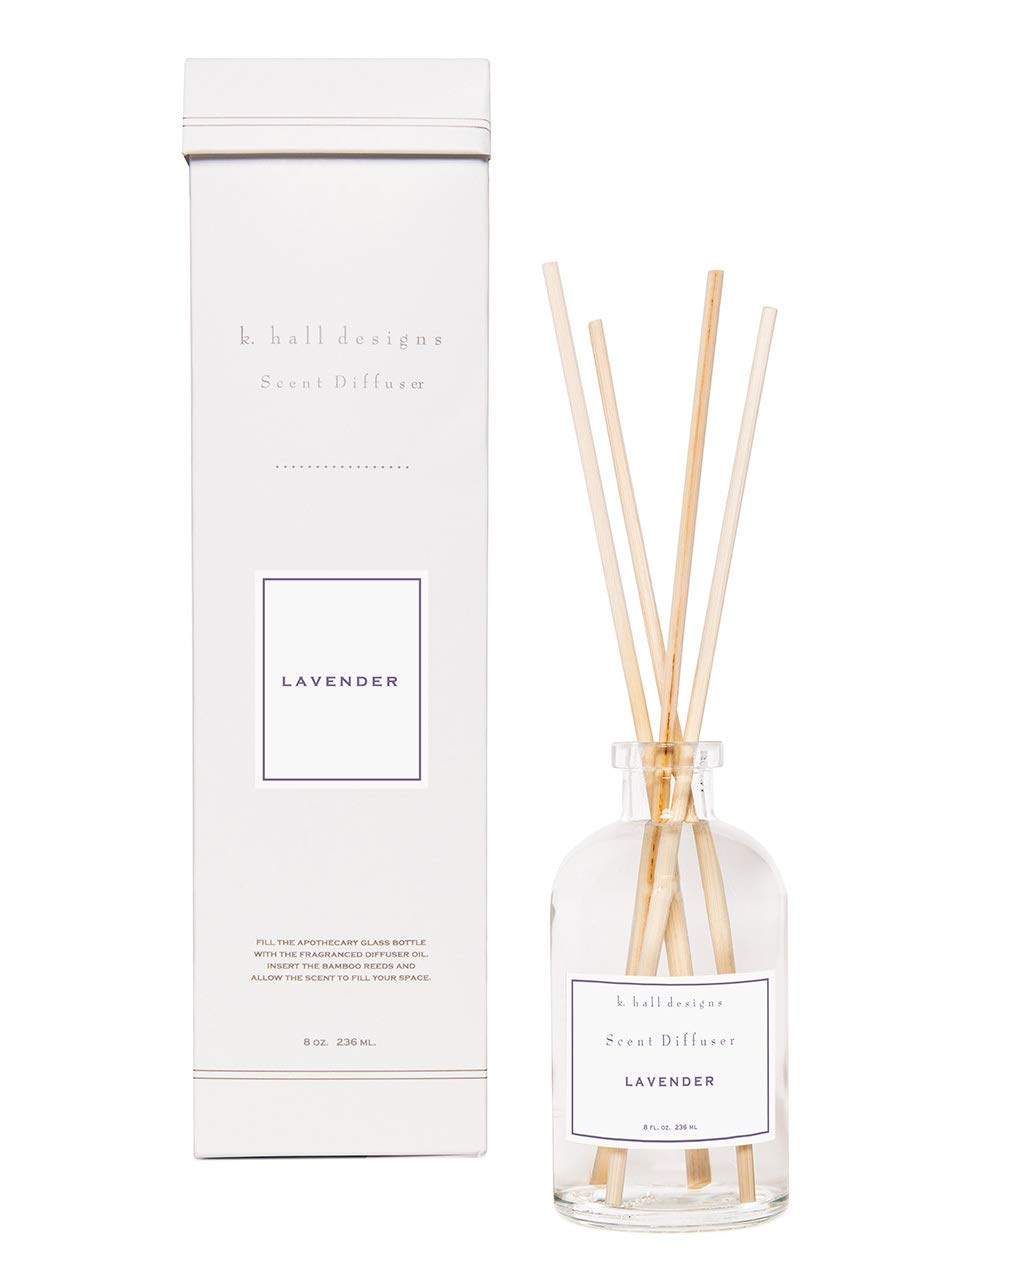 K. Hall Designs Lavender Scent Diffuser Kit